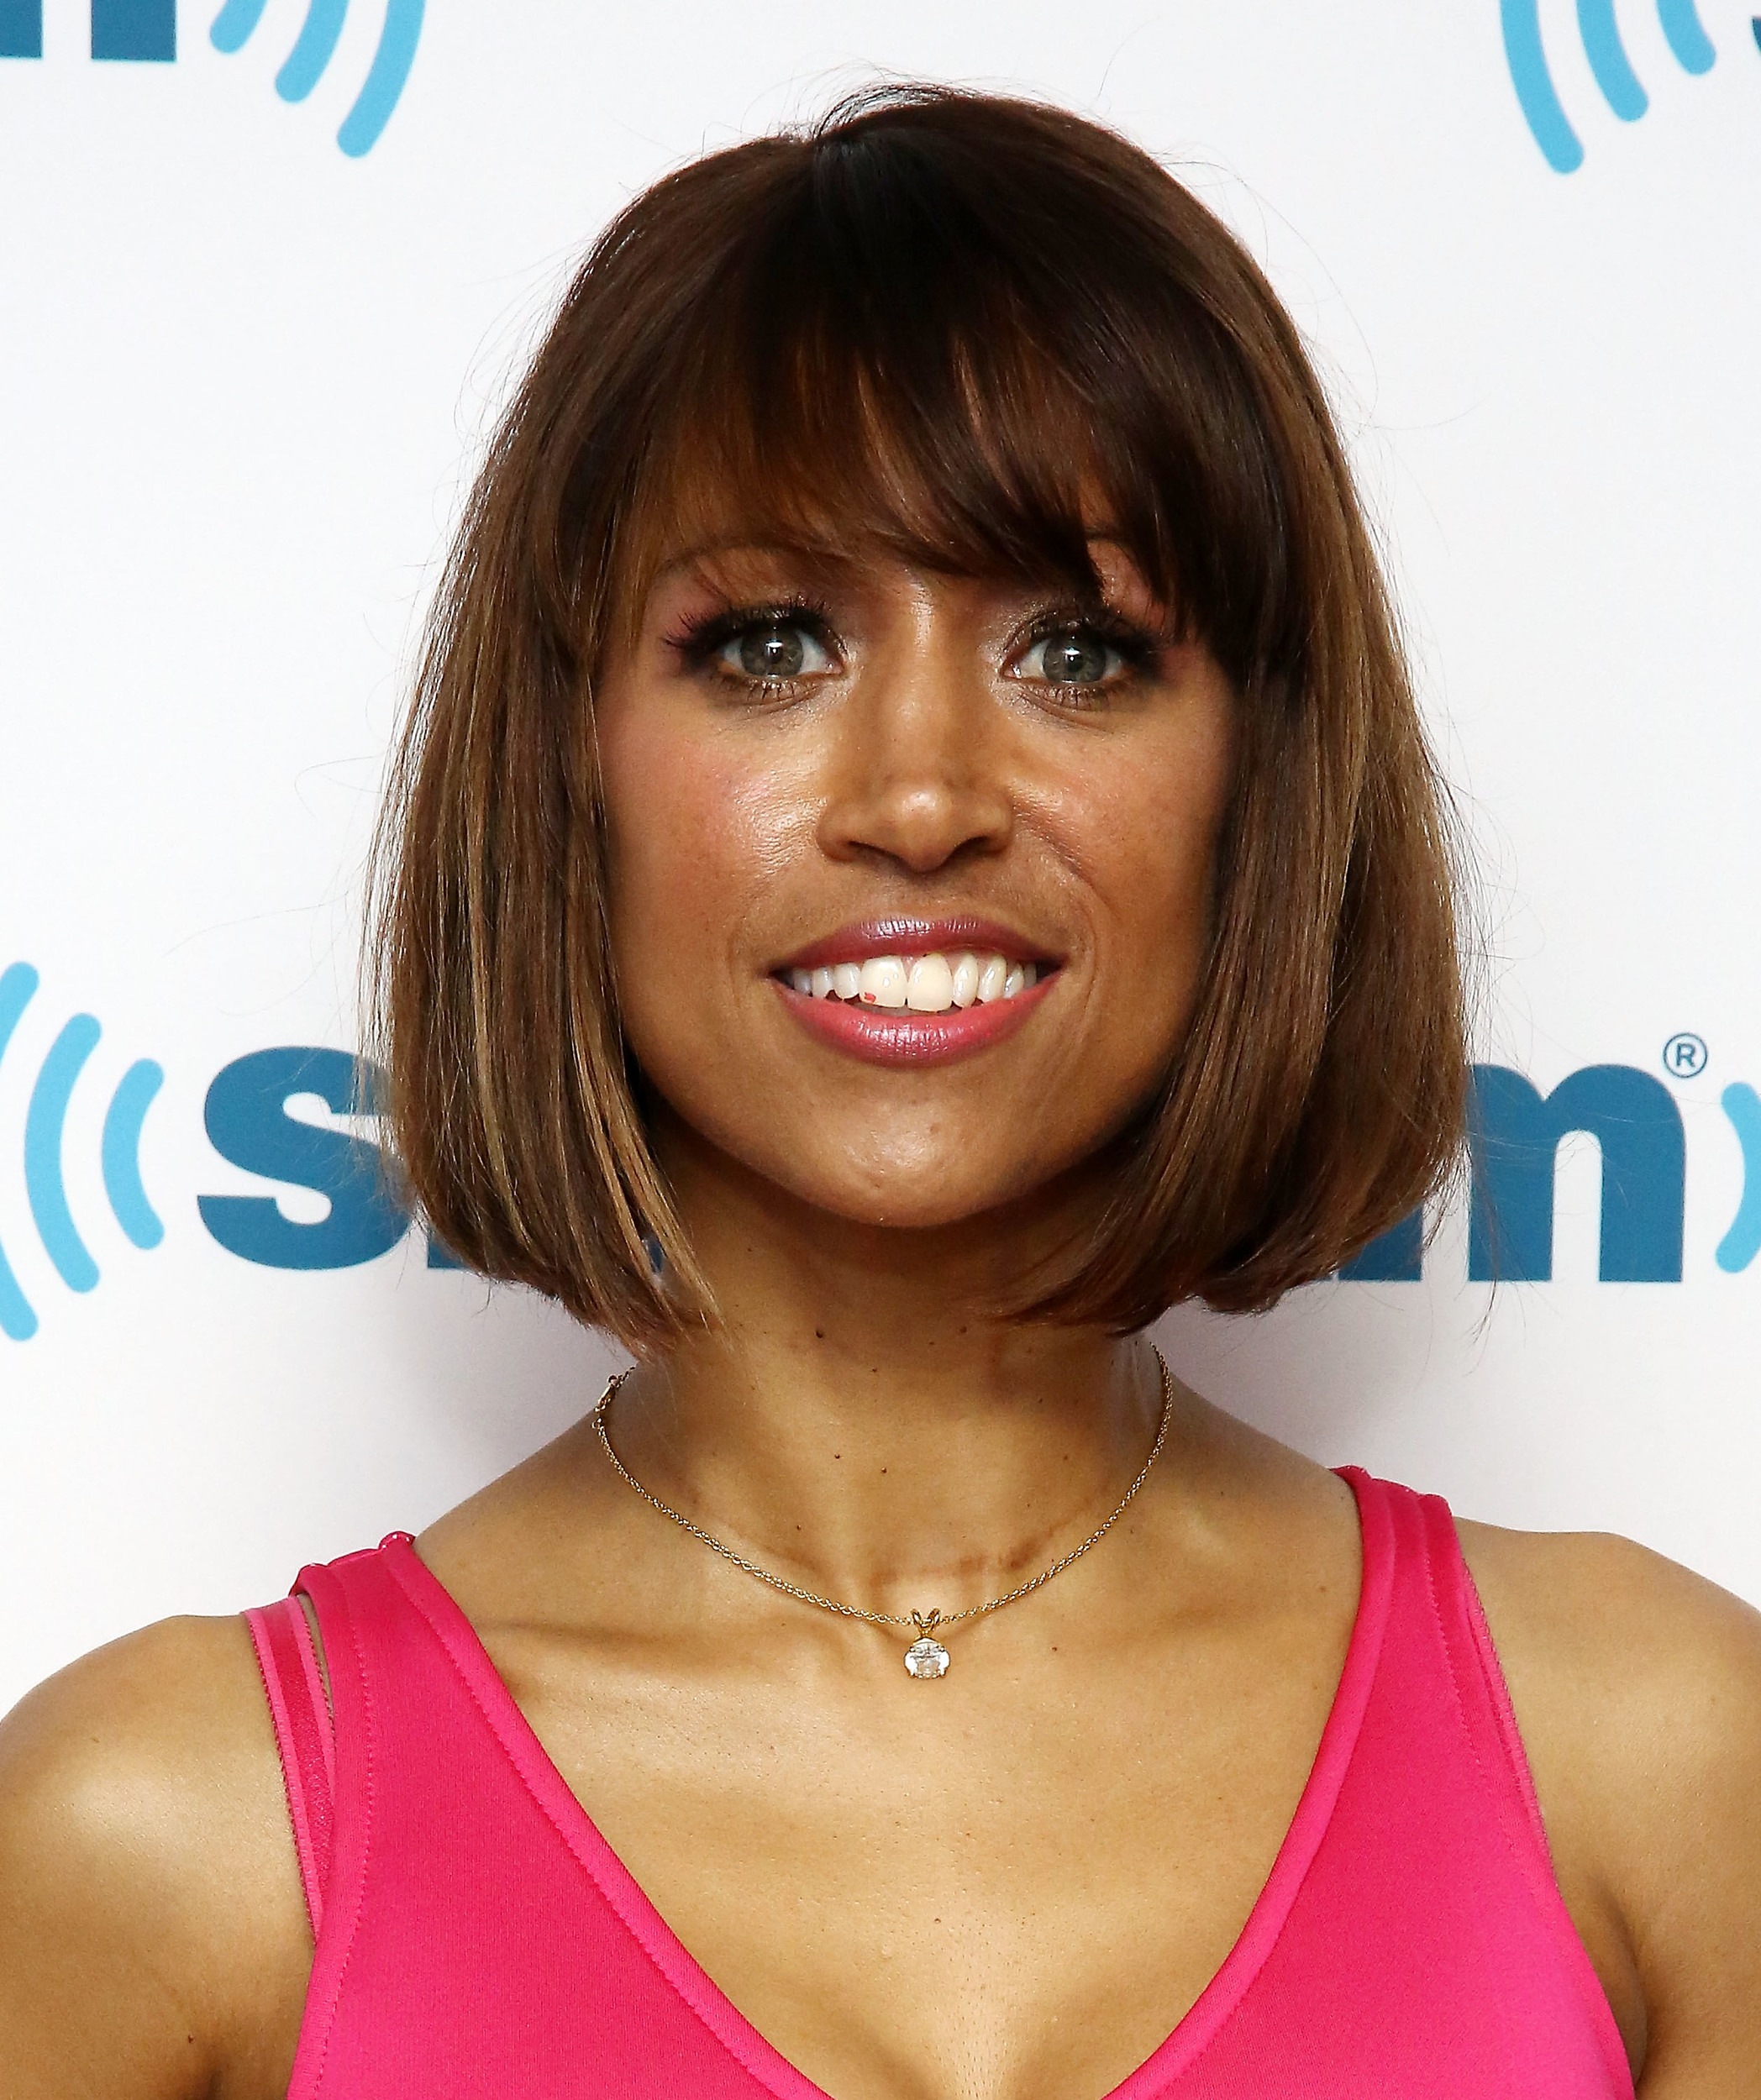 Stacey Dash reignites feud with Chelsea Handler at black conservative event